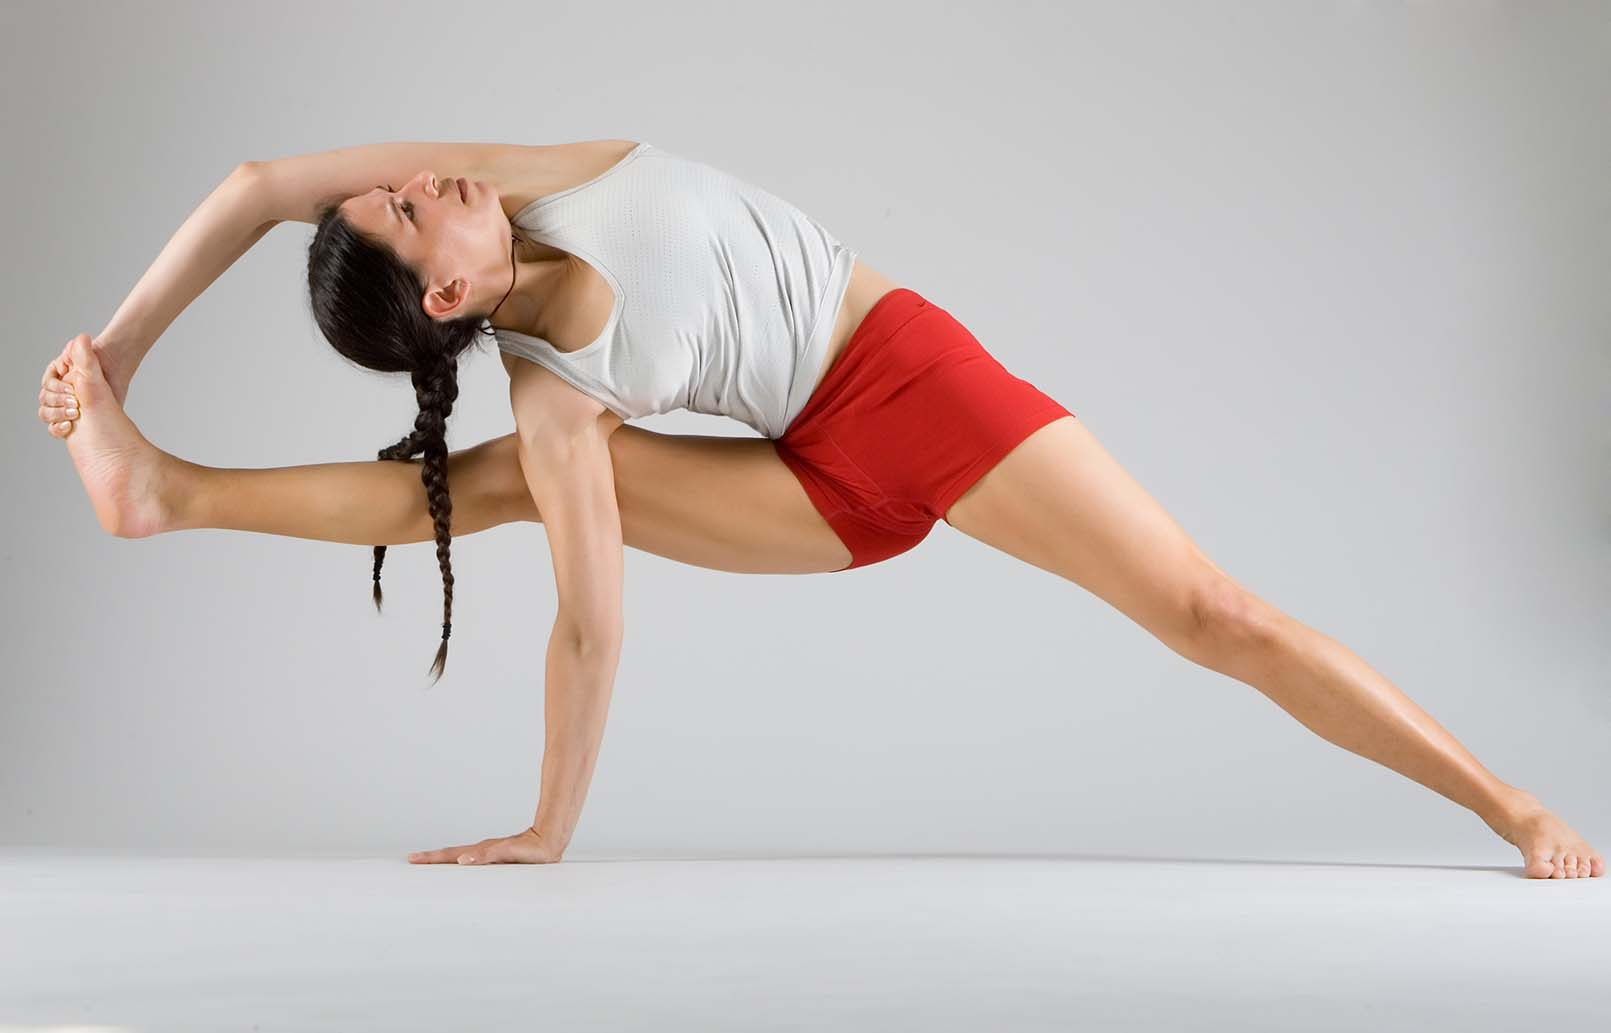 Does yoga solves heart problems? 1